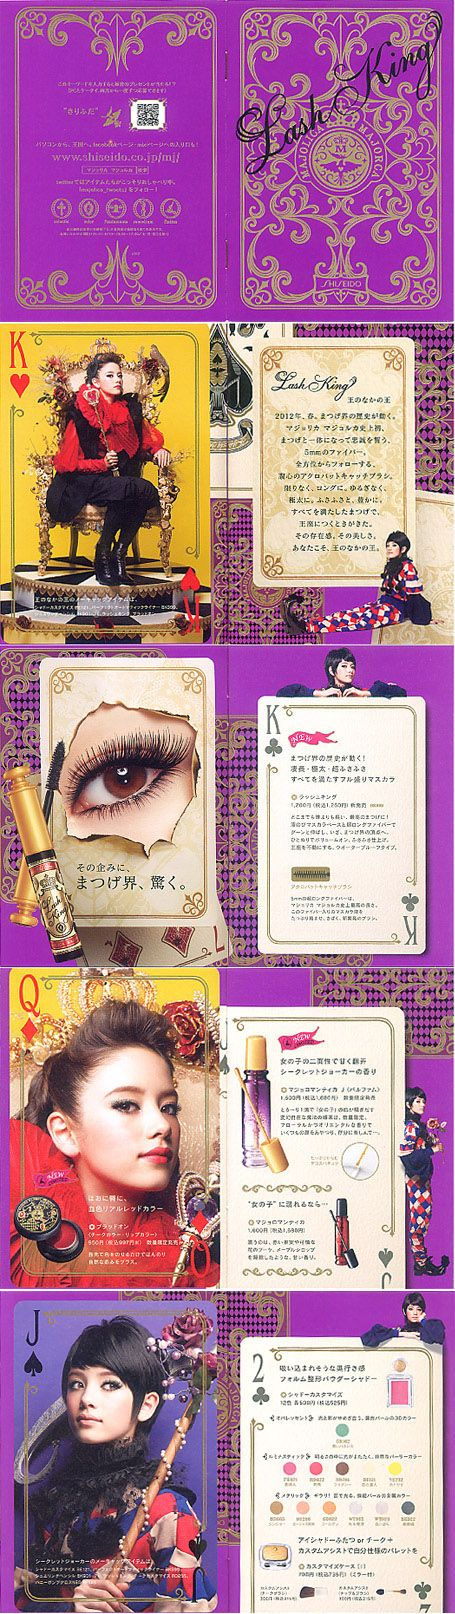 Majilica Majorca By SHISEIDO Co.,Ltd. leaflet. Japanese Gothictick & Girly. Make Up Brand. Romantic Beauty.